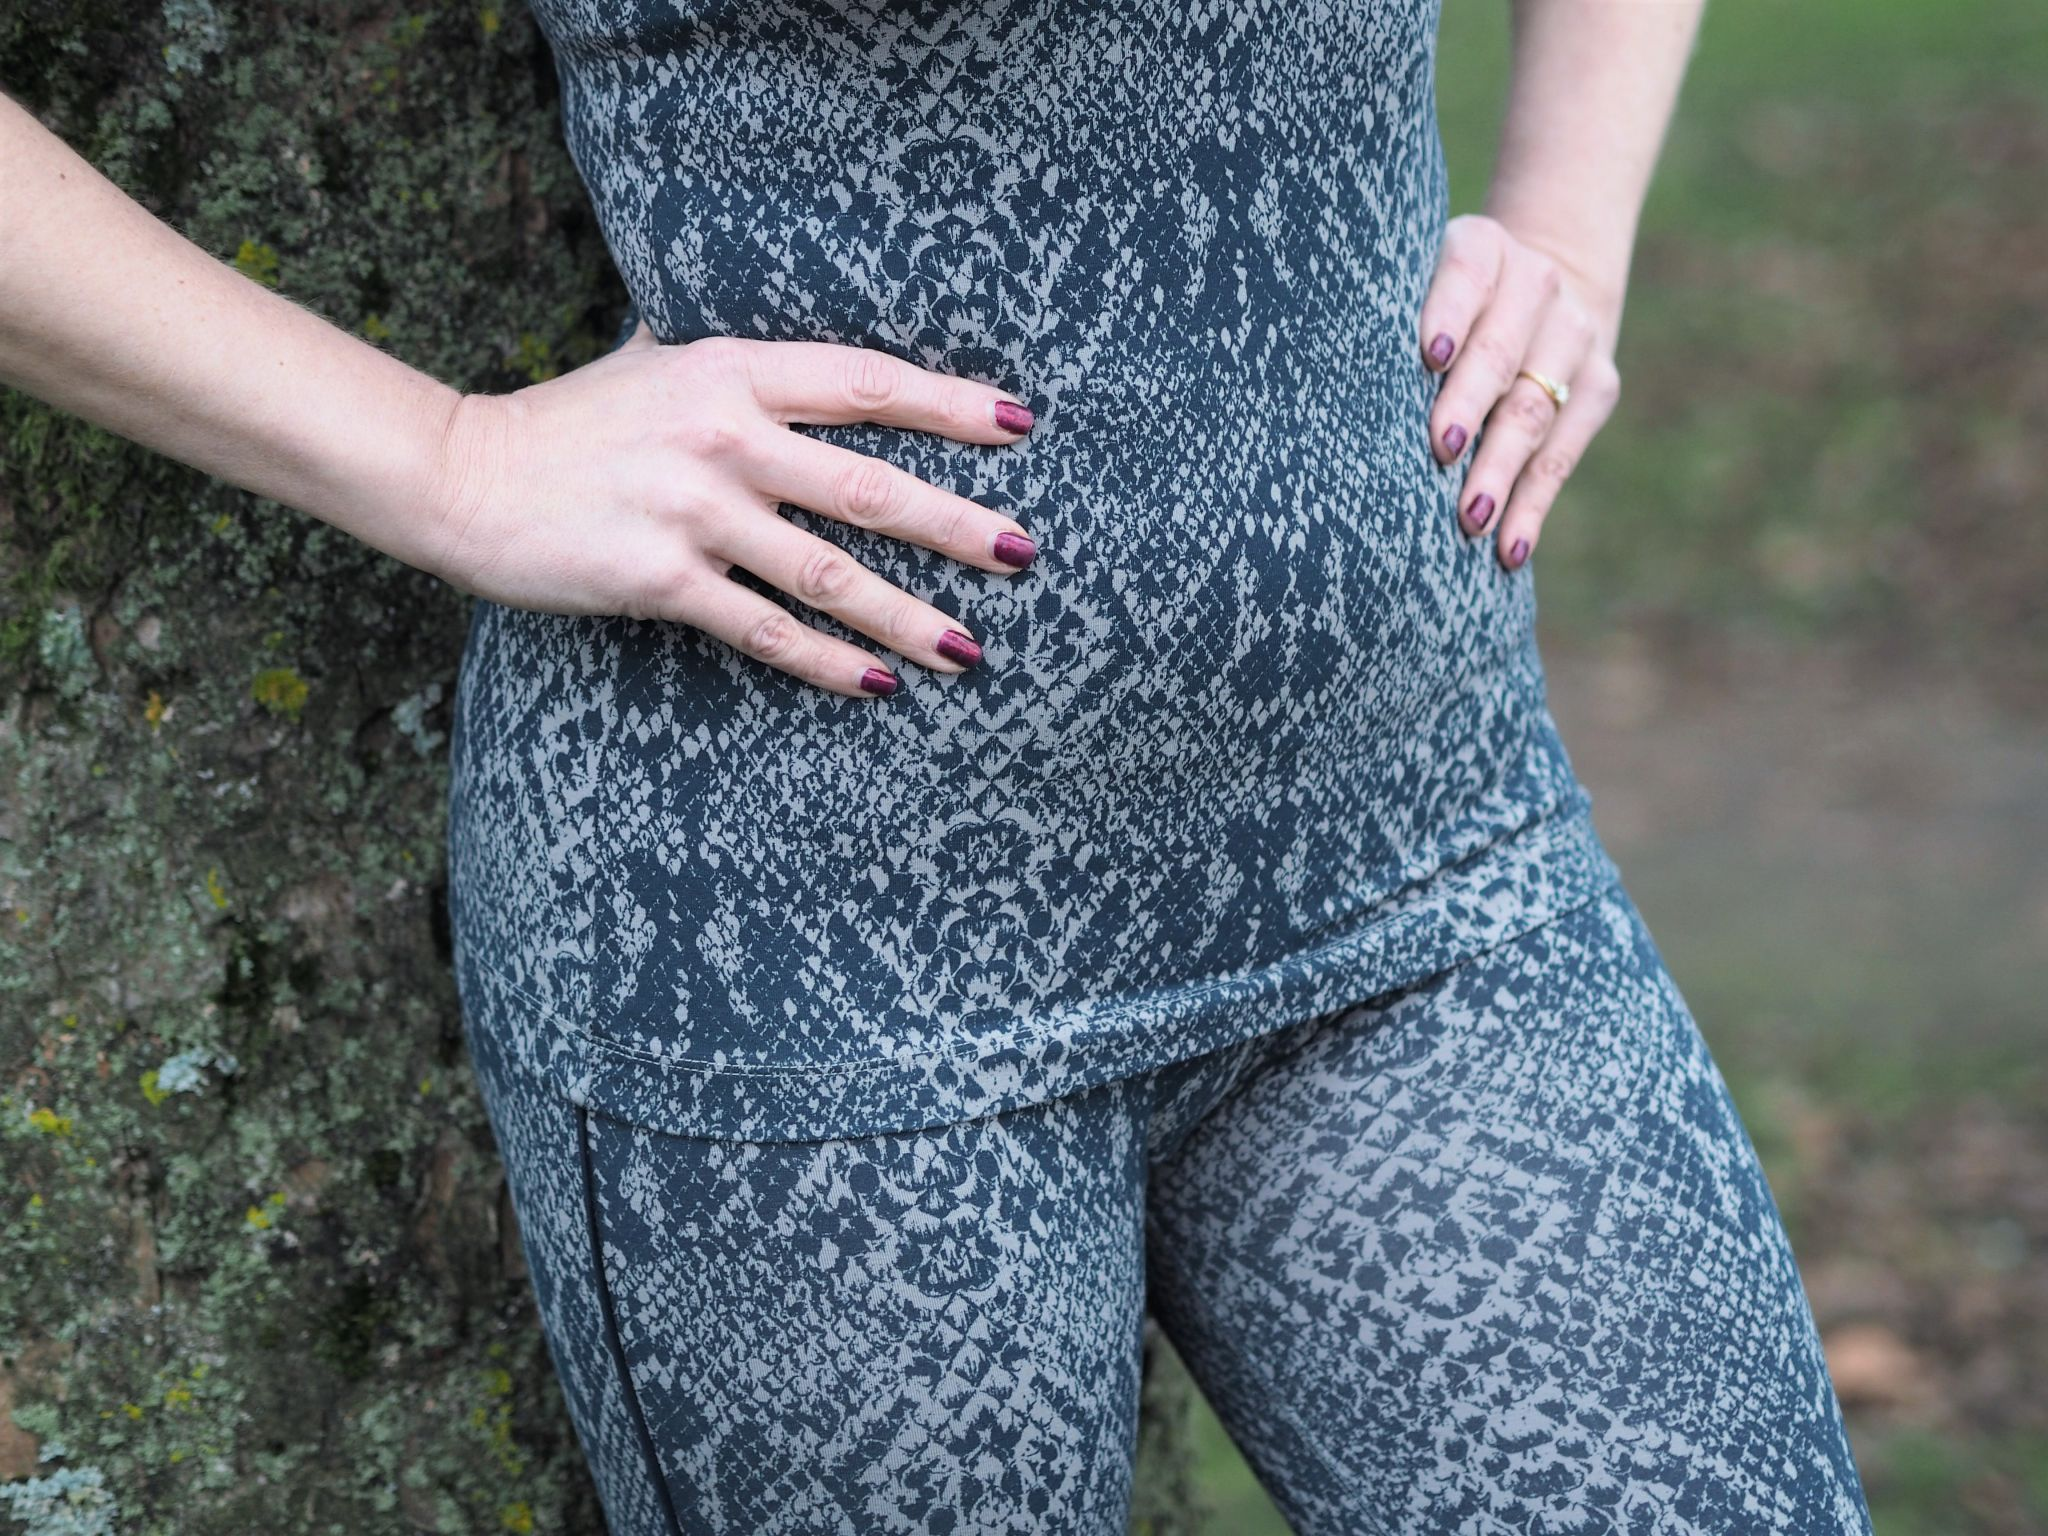 couch to 5K sustainable snake print activewear leggings gym clothing